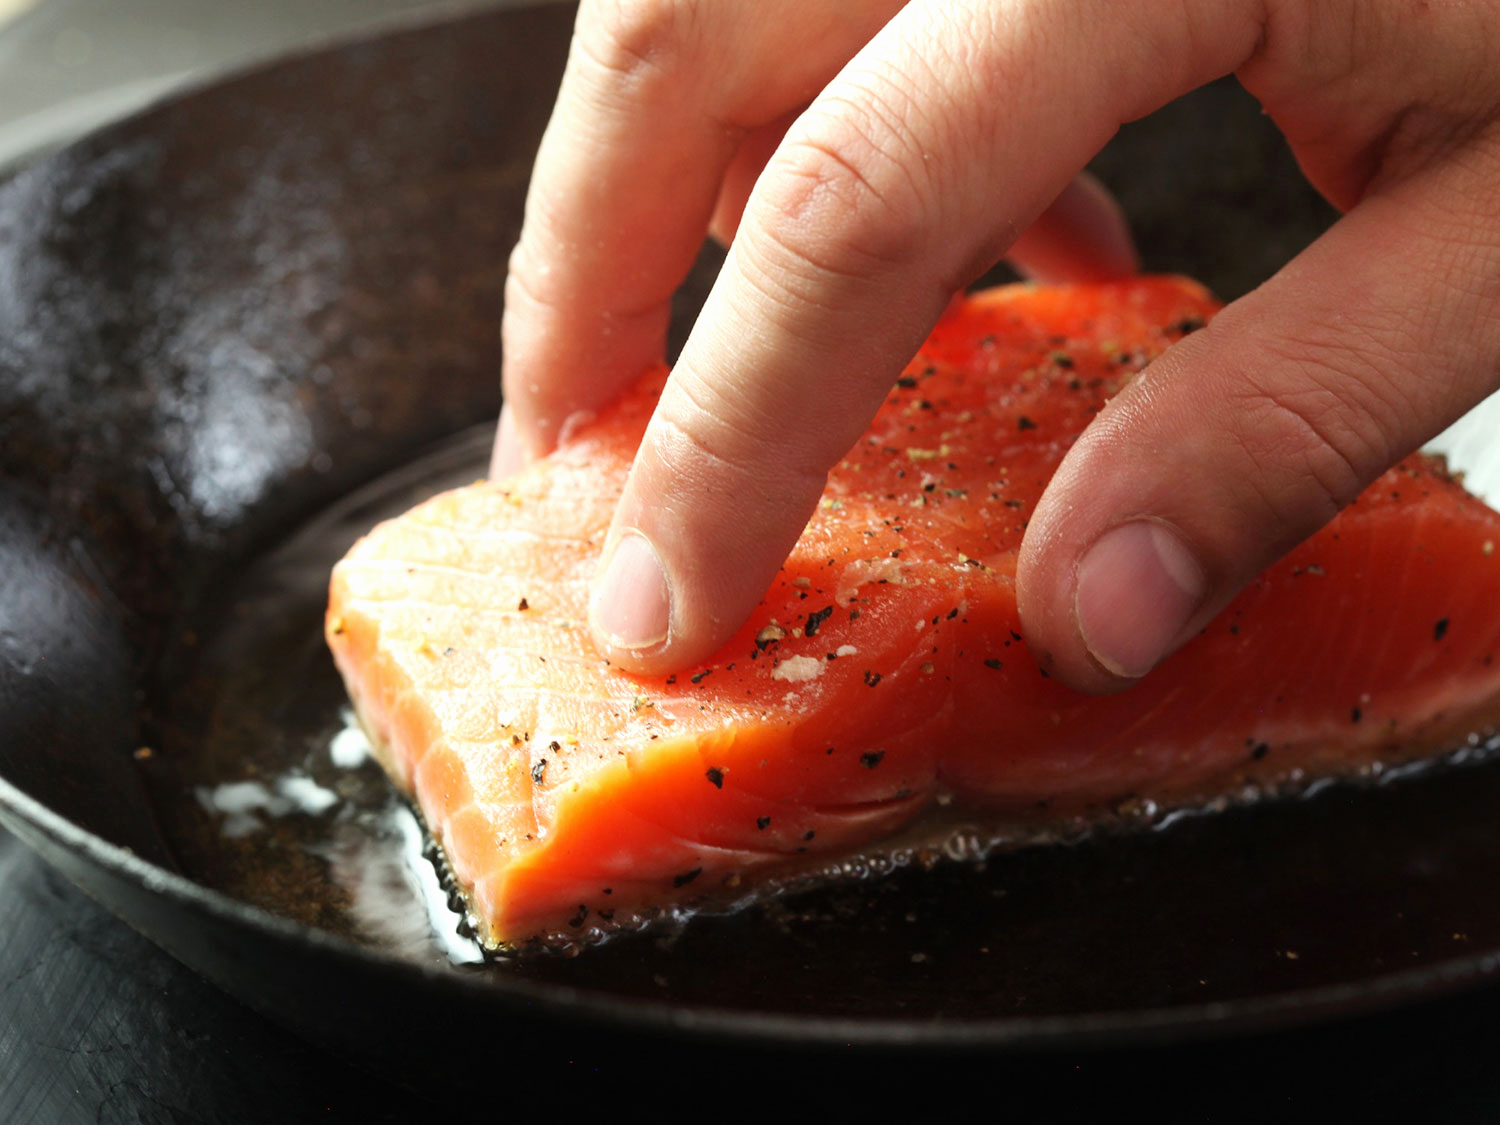 THAW OR COOK FROM FROZEN - COOKING FROM FROZEN:Many people don't realize how easy fish is to cook when still frozen!Simply brush the outside of fillets with your favorite oil - we love olive oil and avocado oil, and coconut oil for their health benefits - and place skin side up and cook 3 - 4 minutes, uncovered, on a heavy pan over med-high heat. Turn the fish over so the skin is down on the pan, season with your favorite spices, cover, and cook for another 6-8 minutes until cooked through (test with a fork). For very thick fillets you can finish in the oven at 400F.You can do this with many other cooking techniques as well - just add a few minutes if you are cooking from frozen.THAW BEFORE YOU COOK:Prefer to thaw your fish before you cook it? Try these helpful tips!NEVER microwave to thaw - this is the least food safe and most likely method to ruin quality.Instead place fillets or whole fish in plastic bag inside a bowl or pan and place in a sink under a faucet slowly dribbling cold water over the top of it. The agitation of the water will make your fillets thaw very quickly (usually 30-45 minutes or less).Alternatively move your fish in a plastic bag into your refrigerator and let it slowly thaw over the course of 24-48 hours - this method may be slow but it is the safest method.